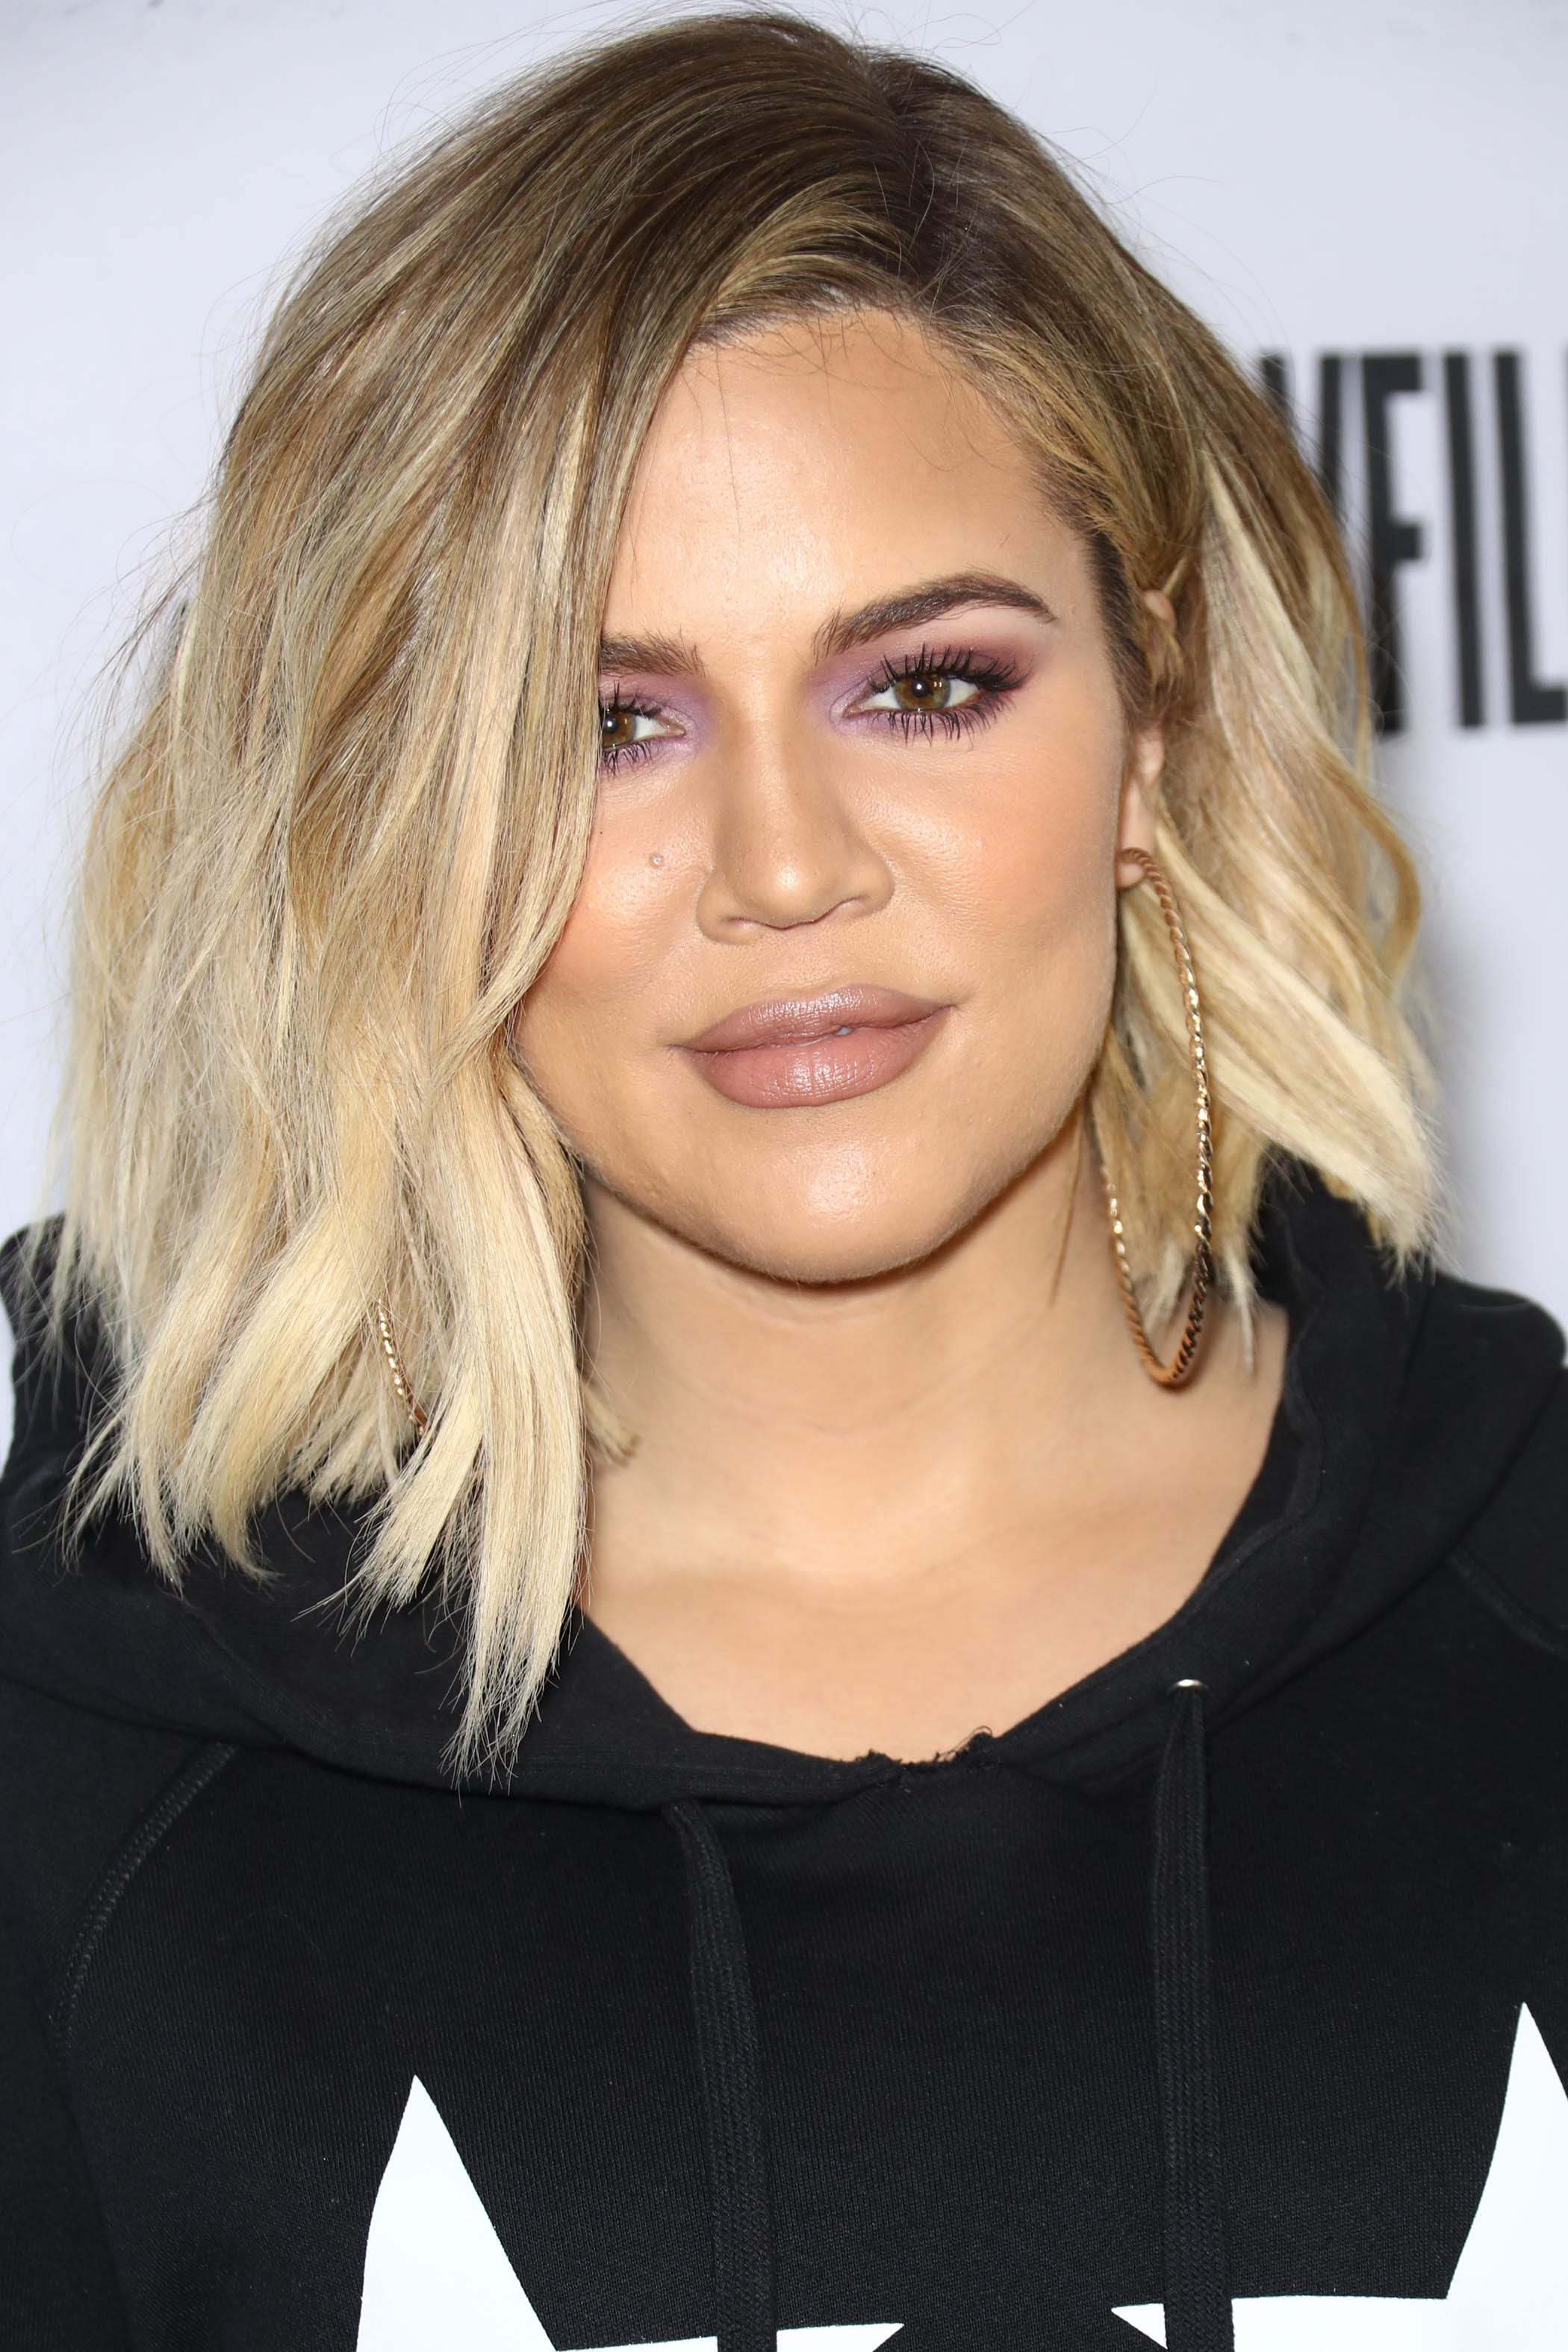 Khloe Kardashian with a blonde wavy lob